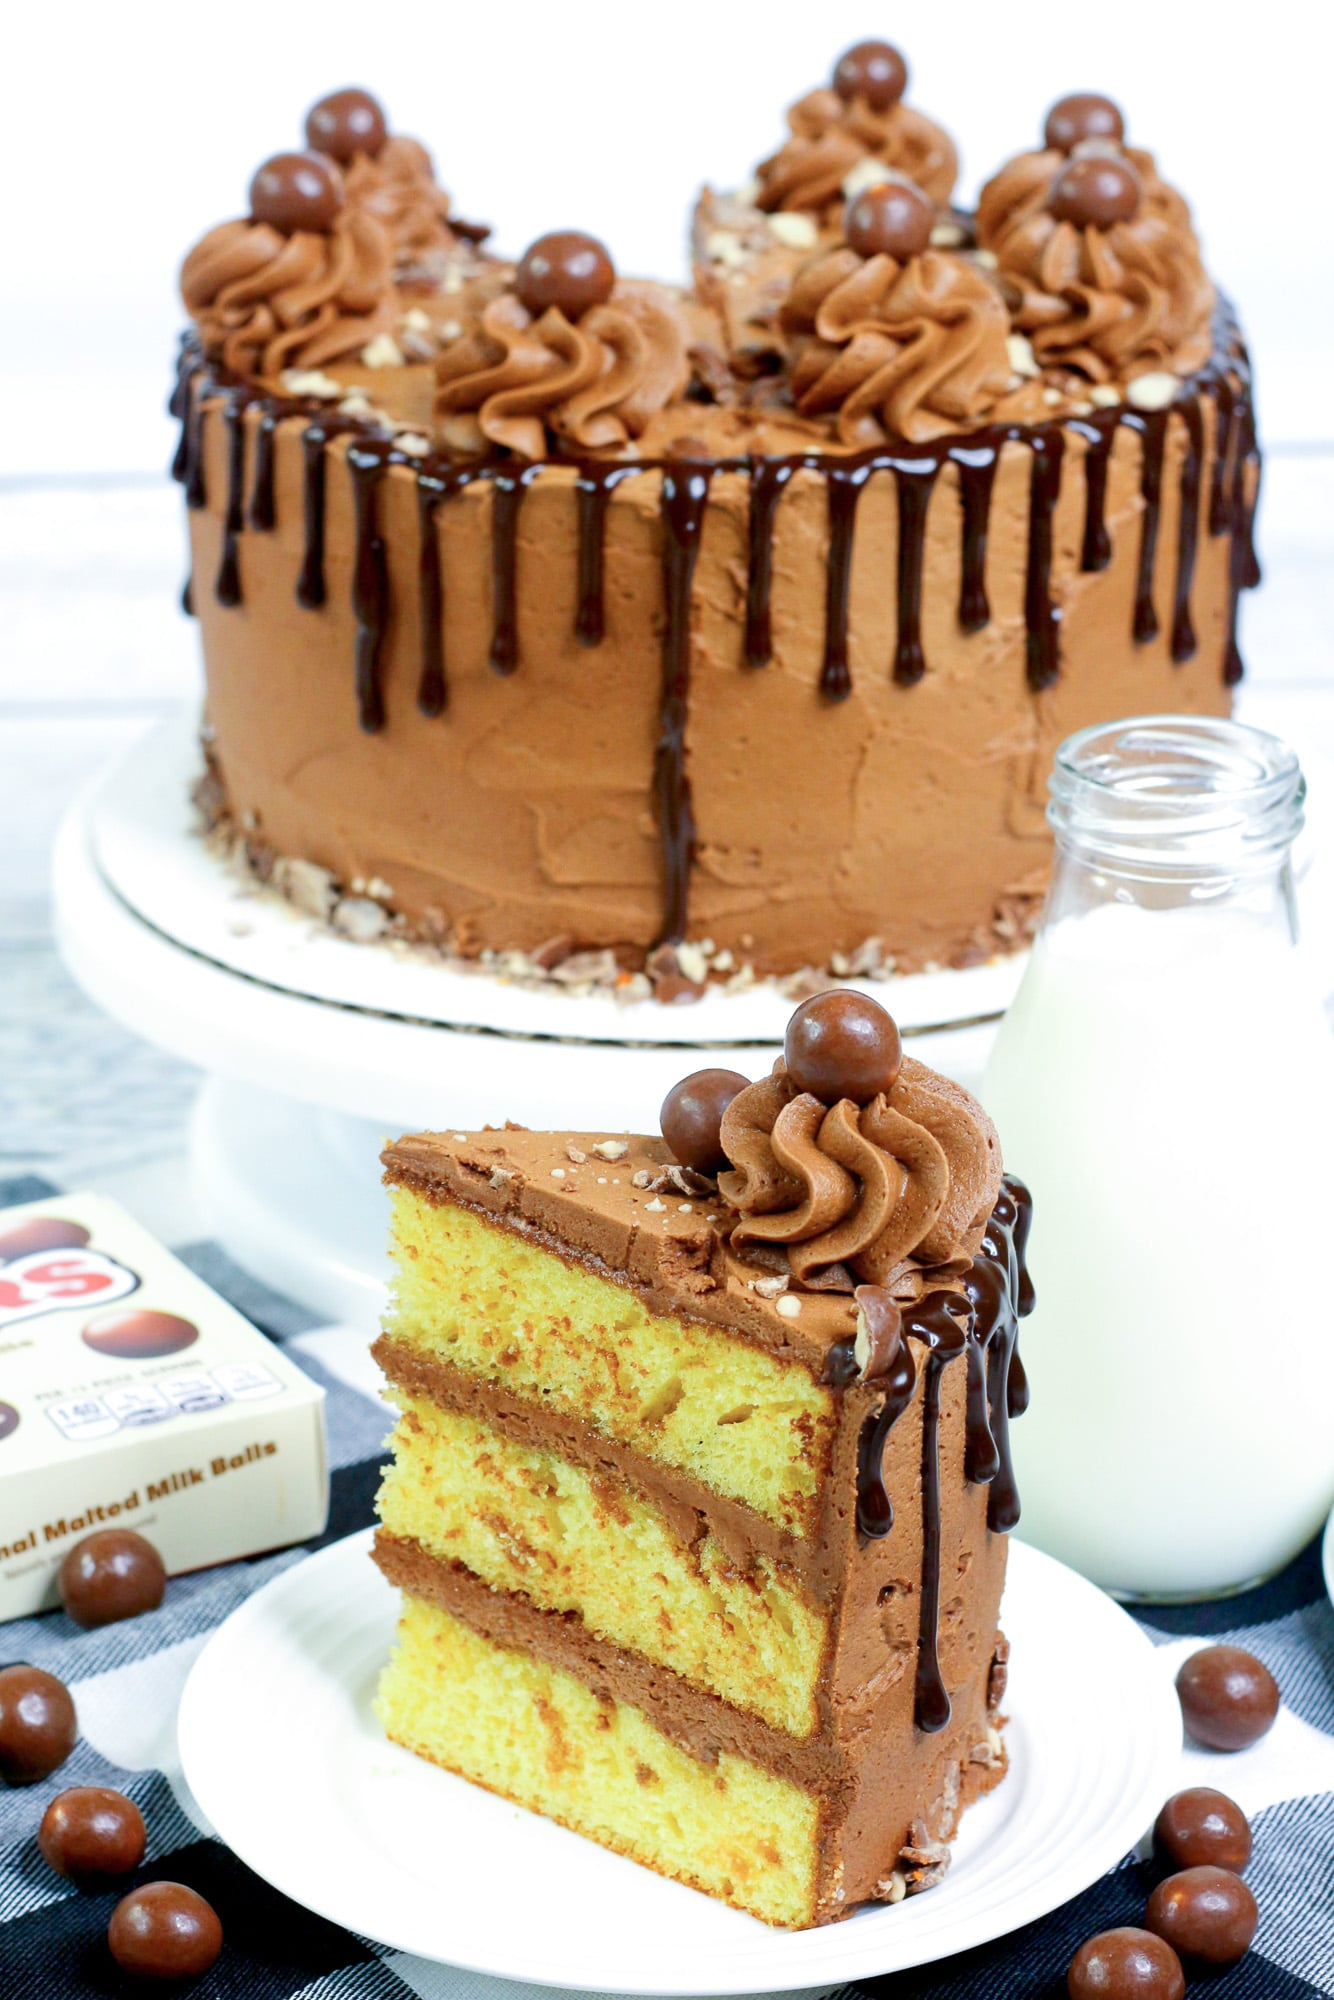 slice of yellow butter cake with chocolate frosting on a white plate